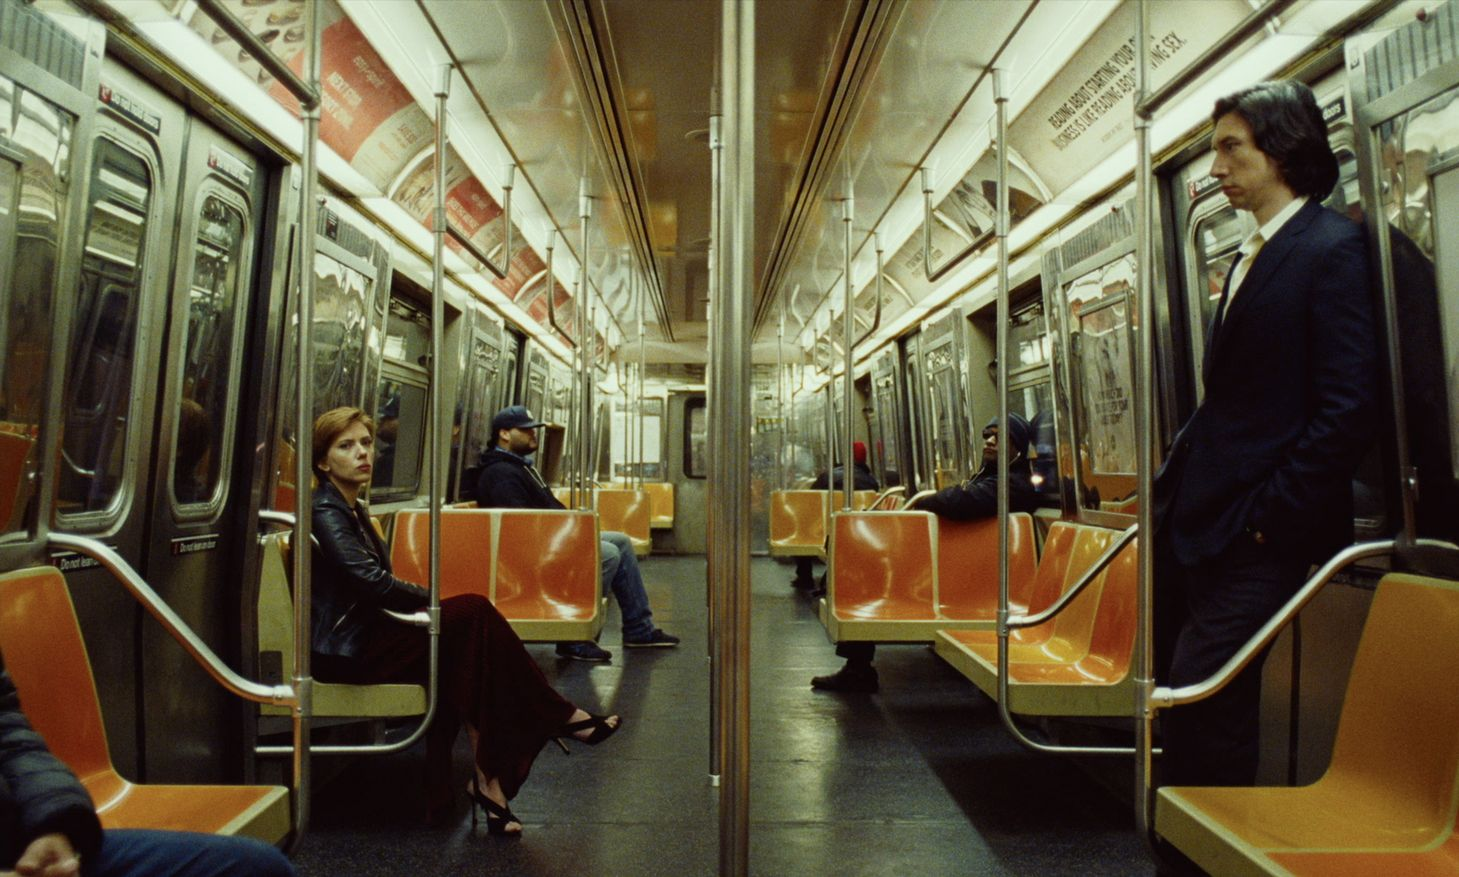 Netflix Marriage Story: Nicole and Charlie Barber on the subway train.